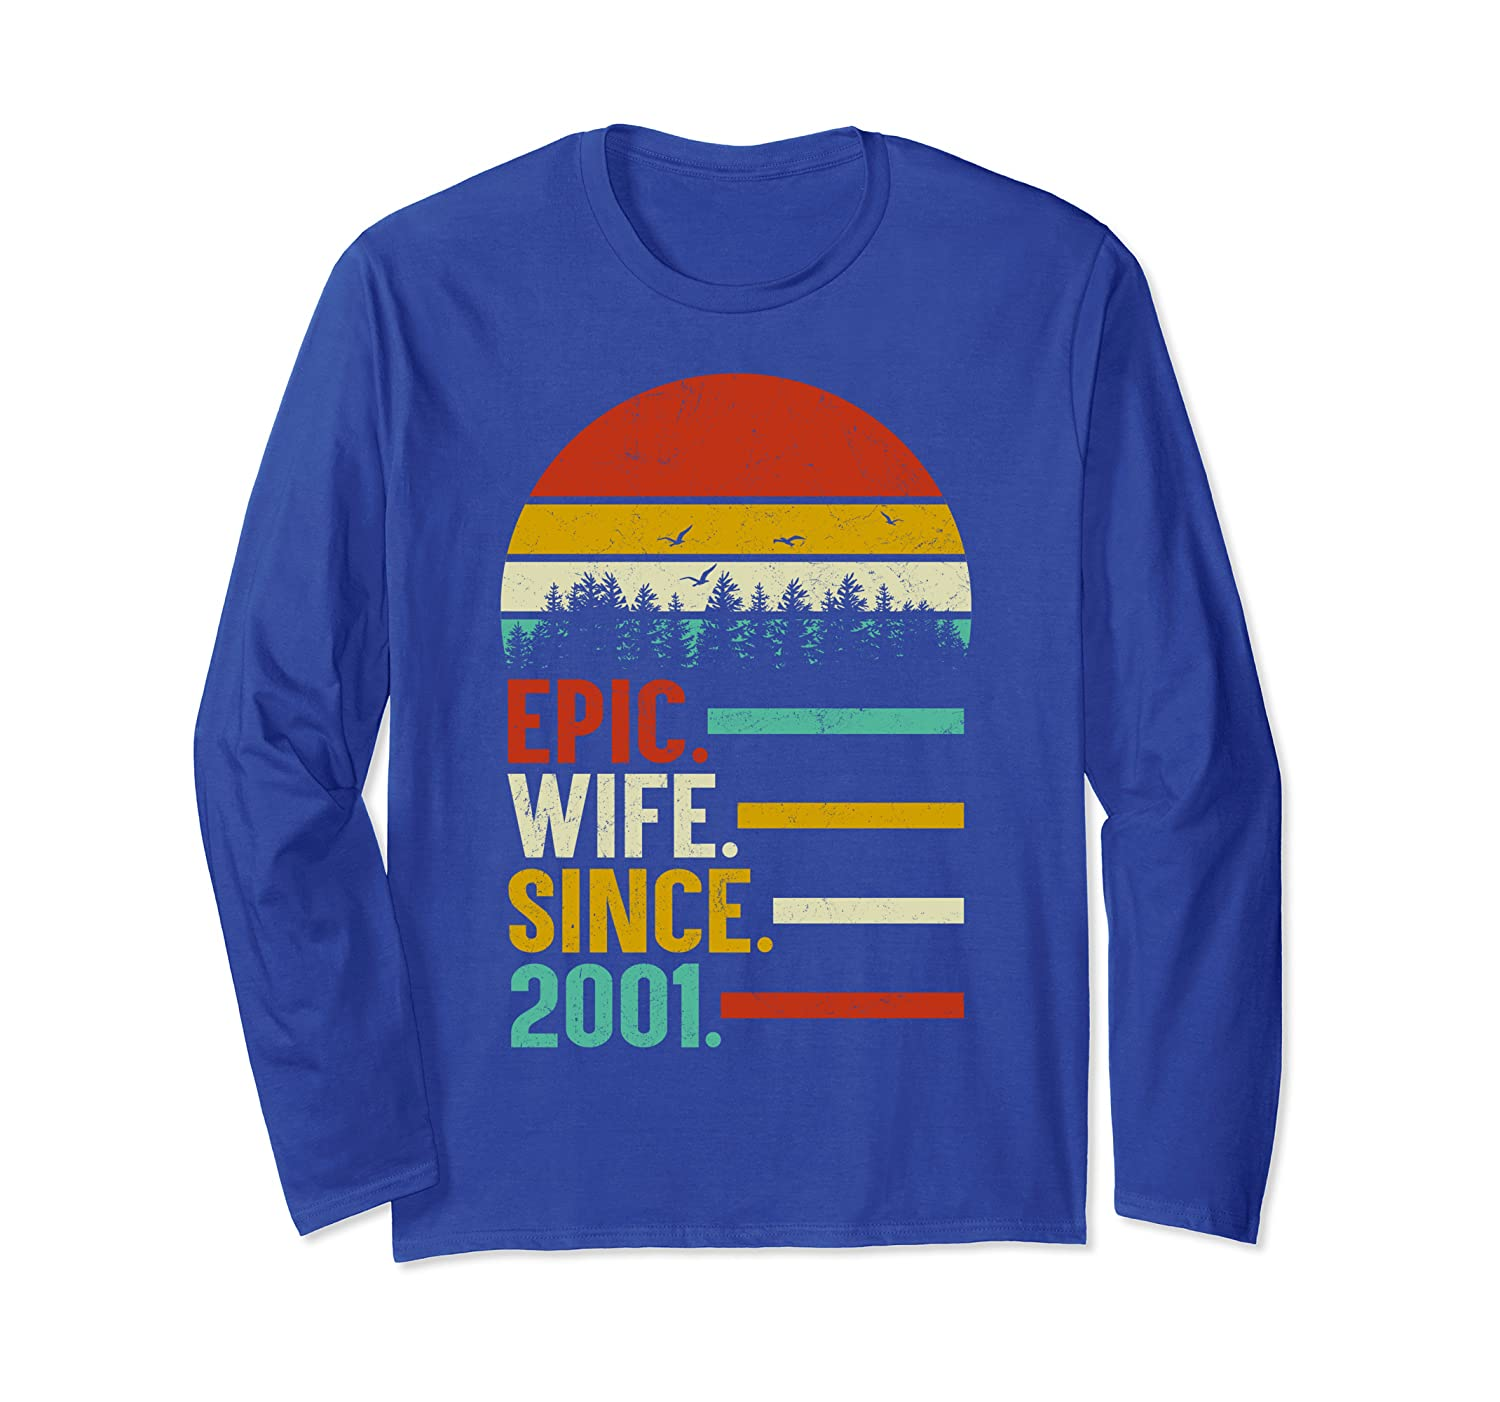 Epic Wife Since 2001, 18th Wedding Anniversary Gift For Her Long Sleeve T-Shirt